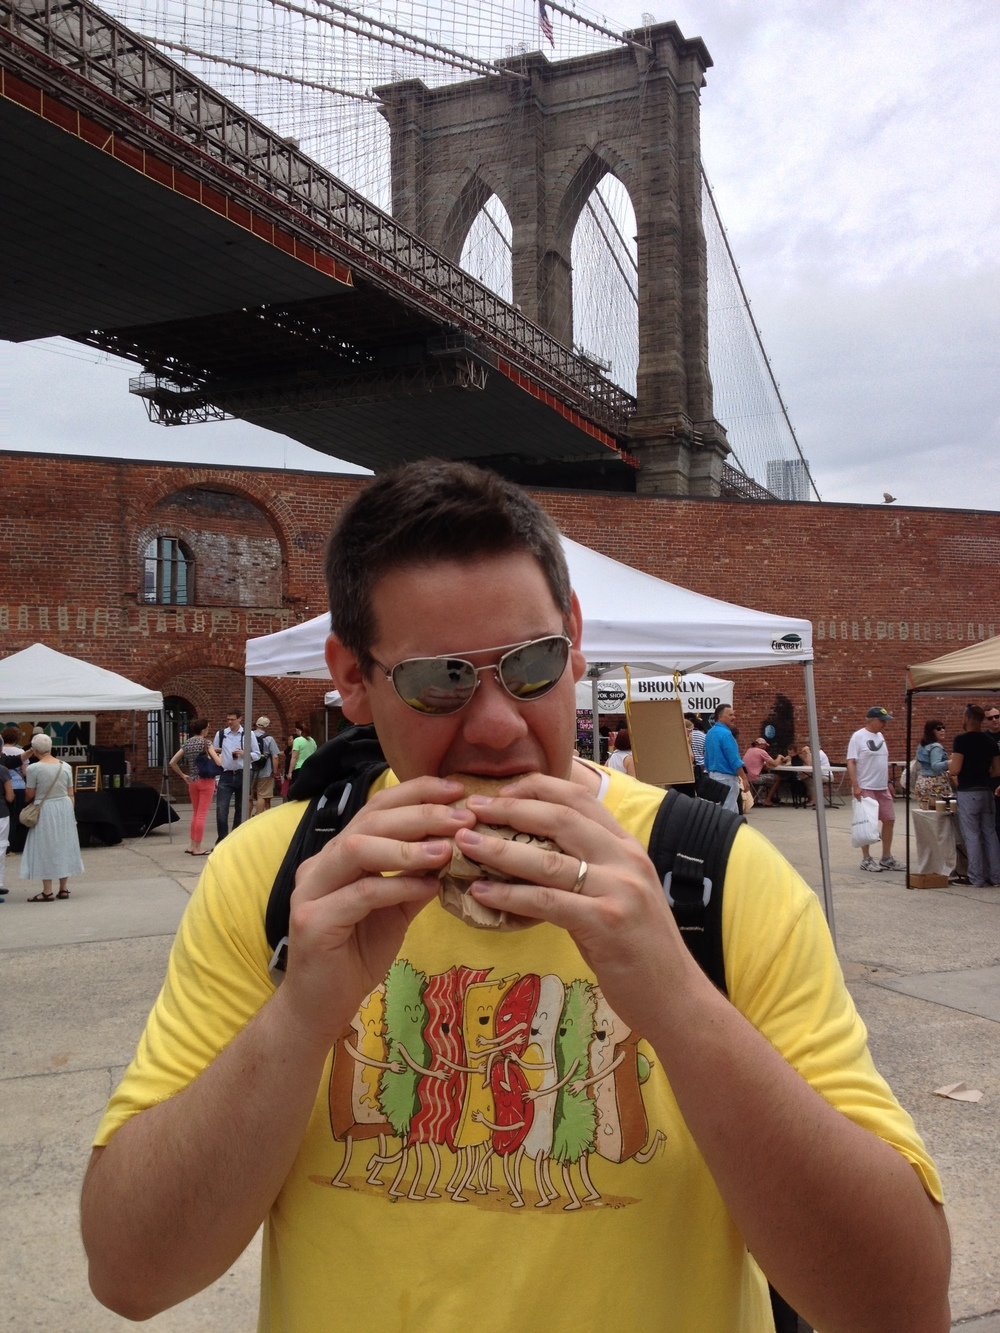 Sandwich? Check. Brooklyn? Check. Awesome backdrop? Double check. NYC is Tim's perfect food destination.